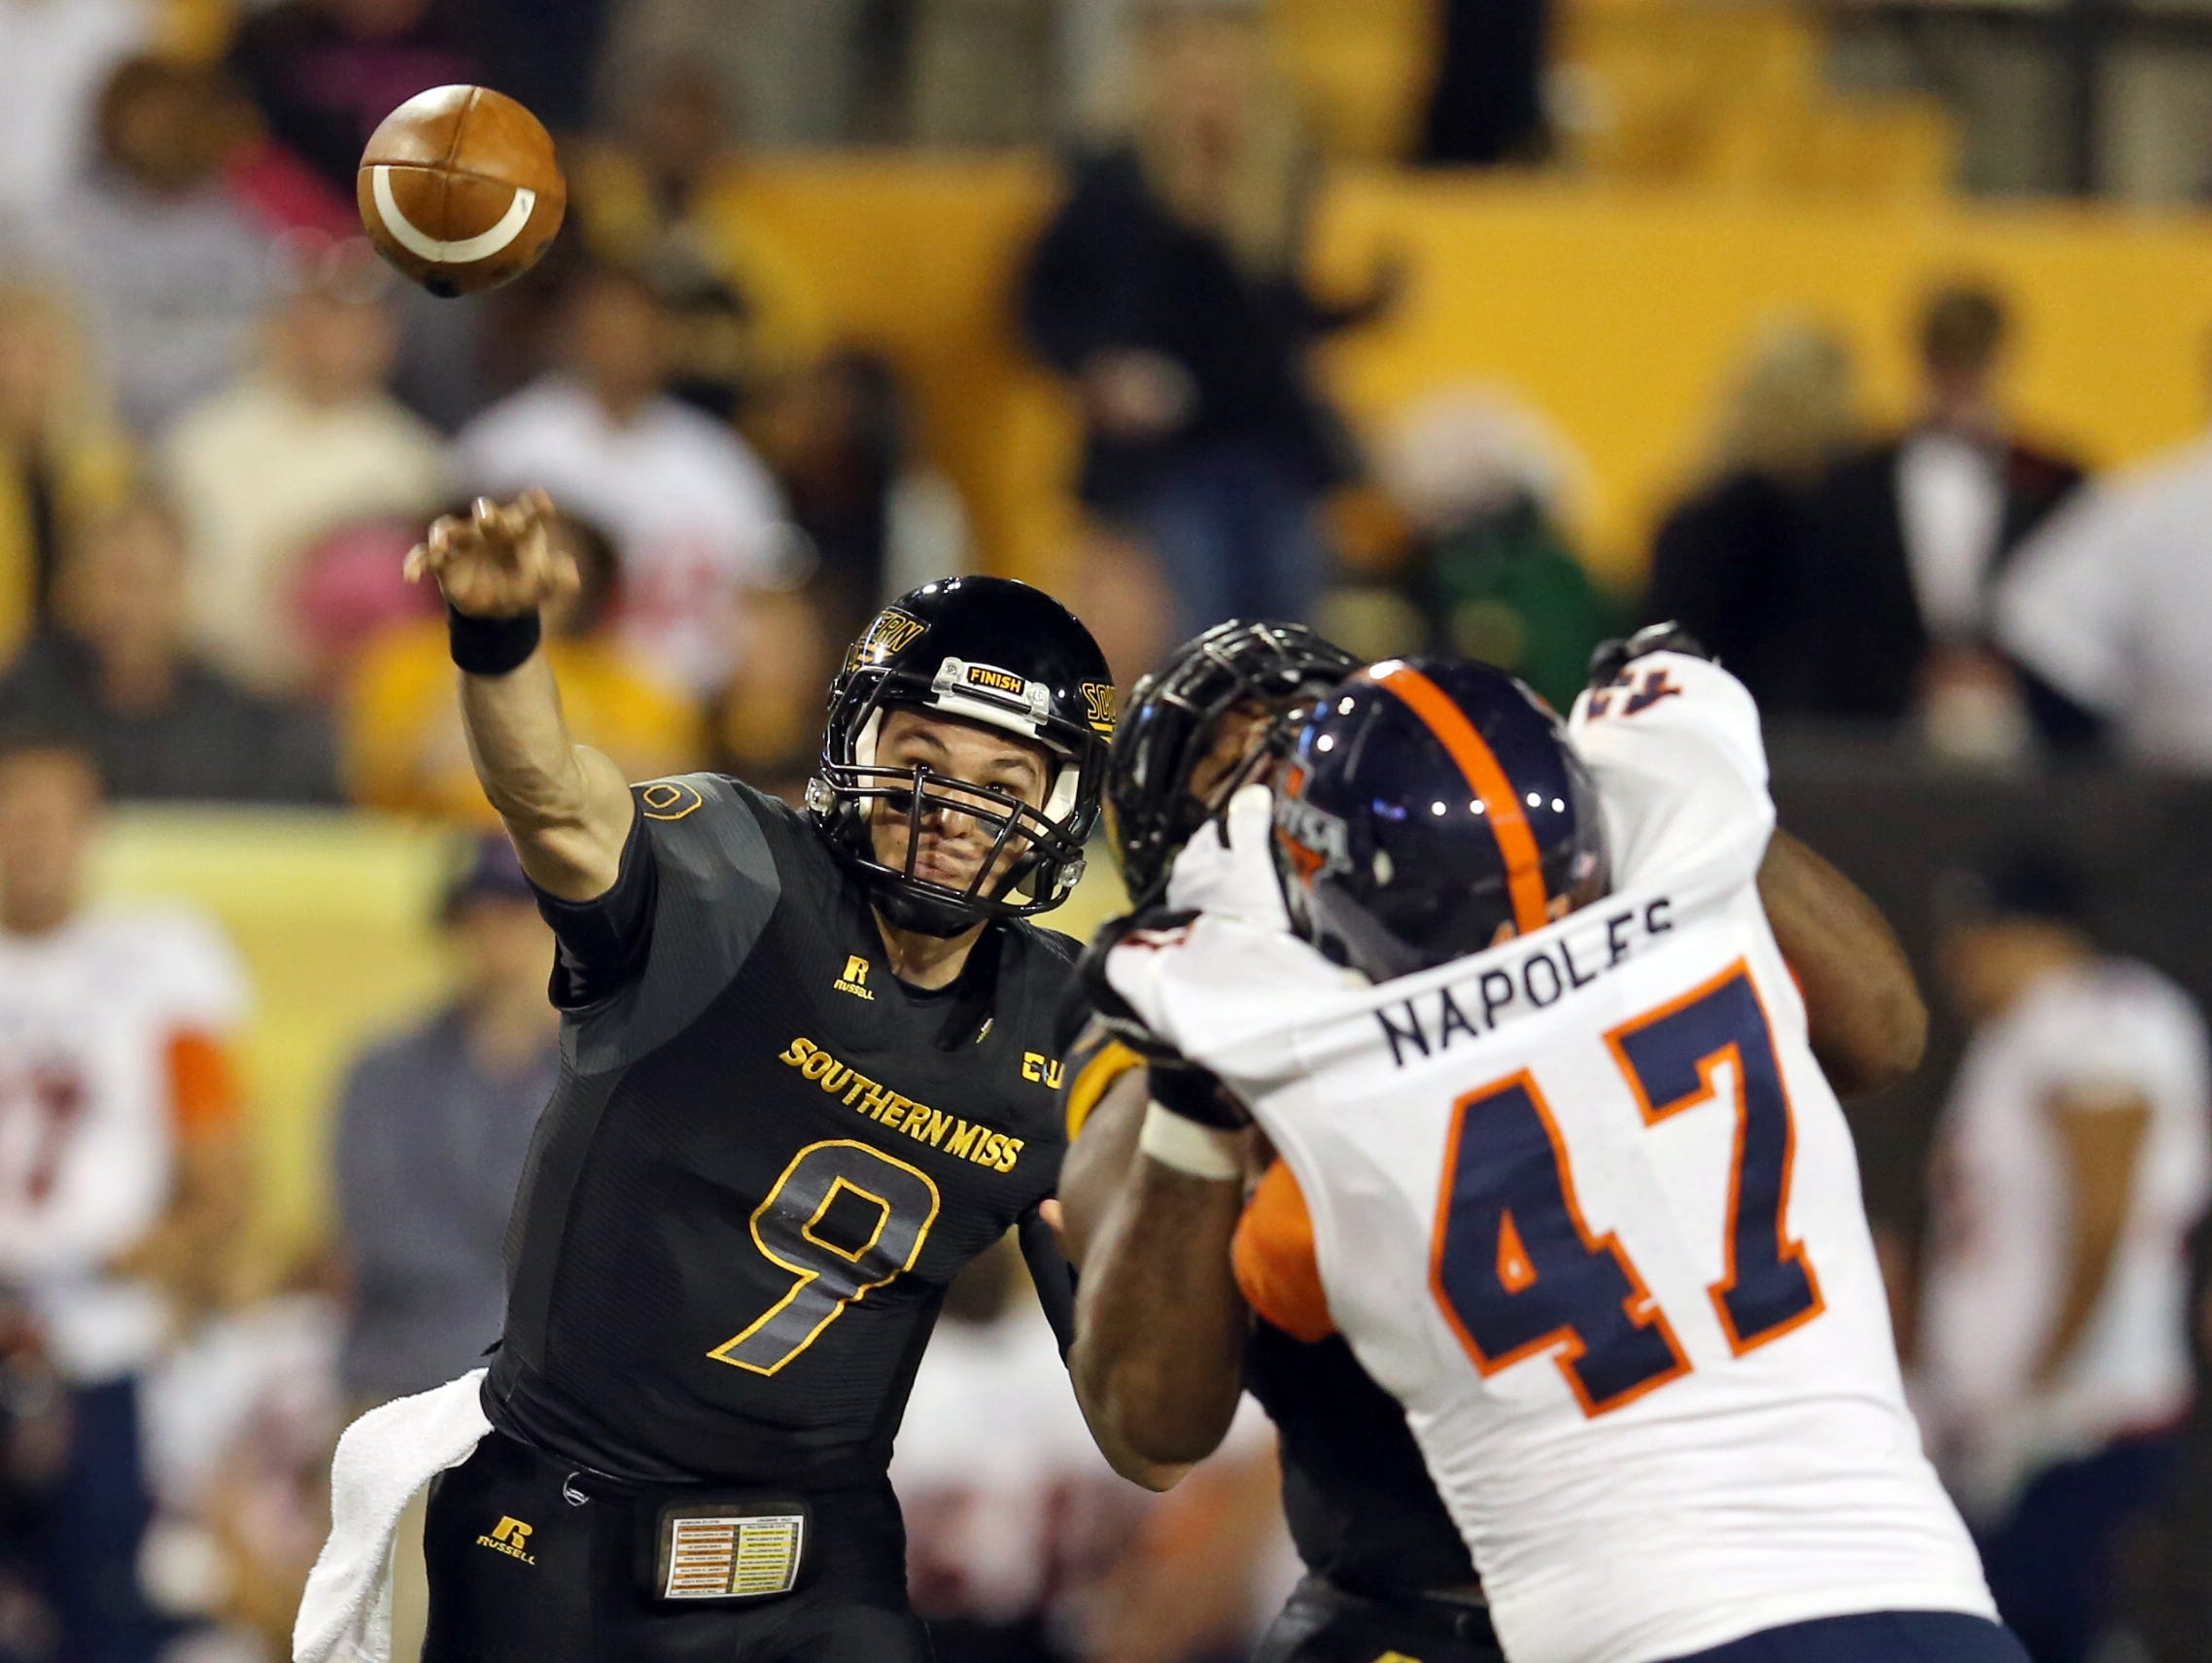 Southern Miss quarterback Nick Mullens has 30 touchdowns this season and is the team's nominee for the Conerly Trophy.